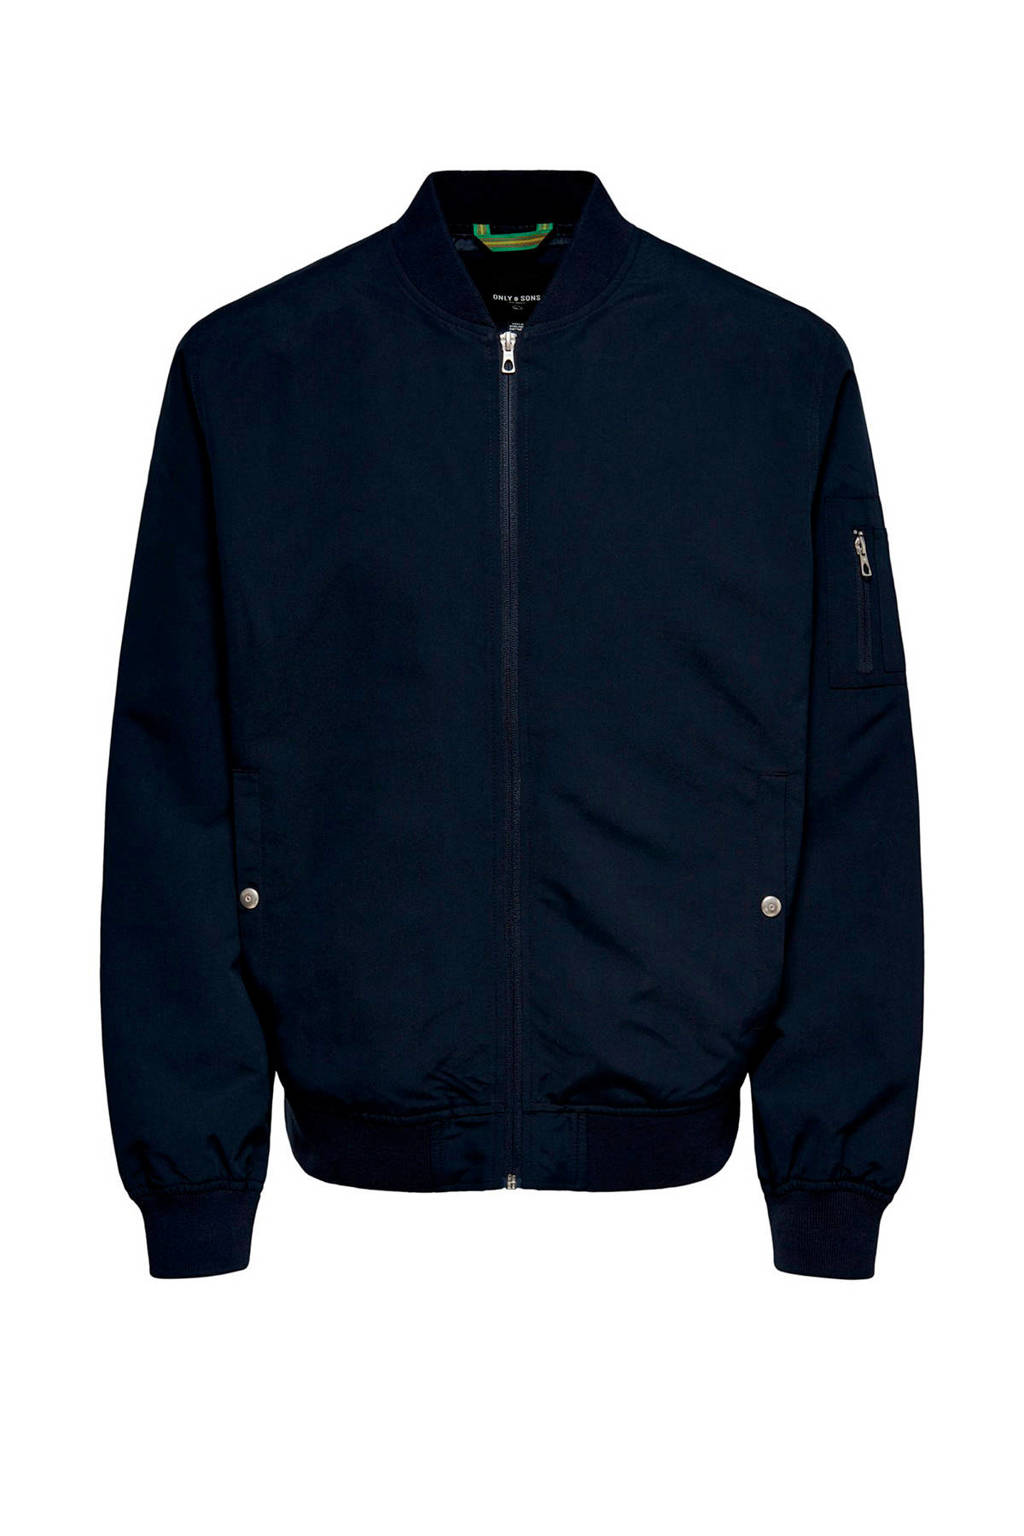 ONLY & SONS jack donkerblauw, Donkerblauw